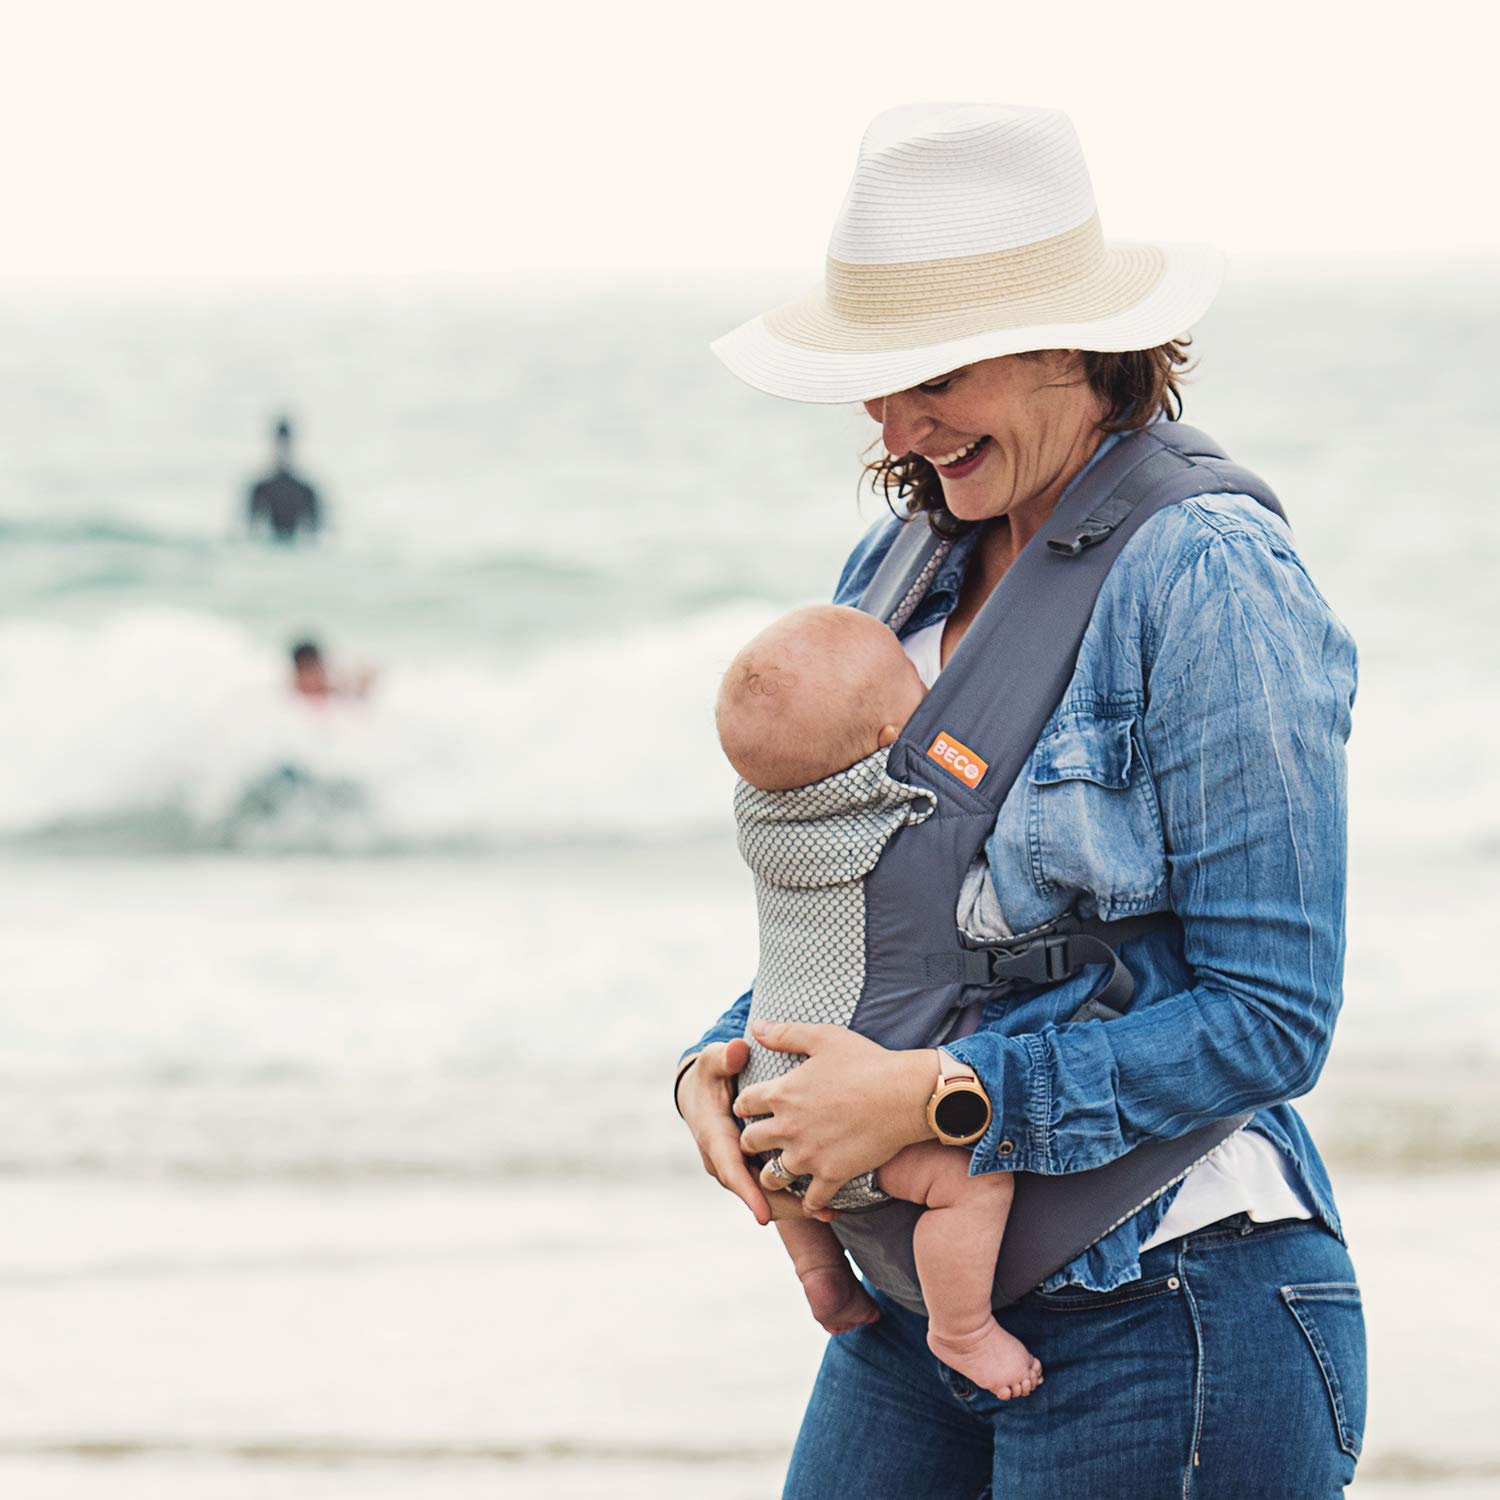 Gemini Performance Baby Carrier By Beco, Over the Rainbow